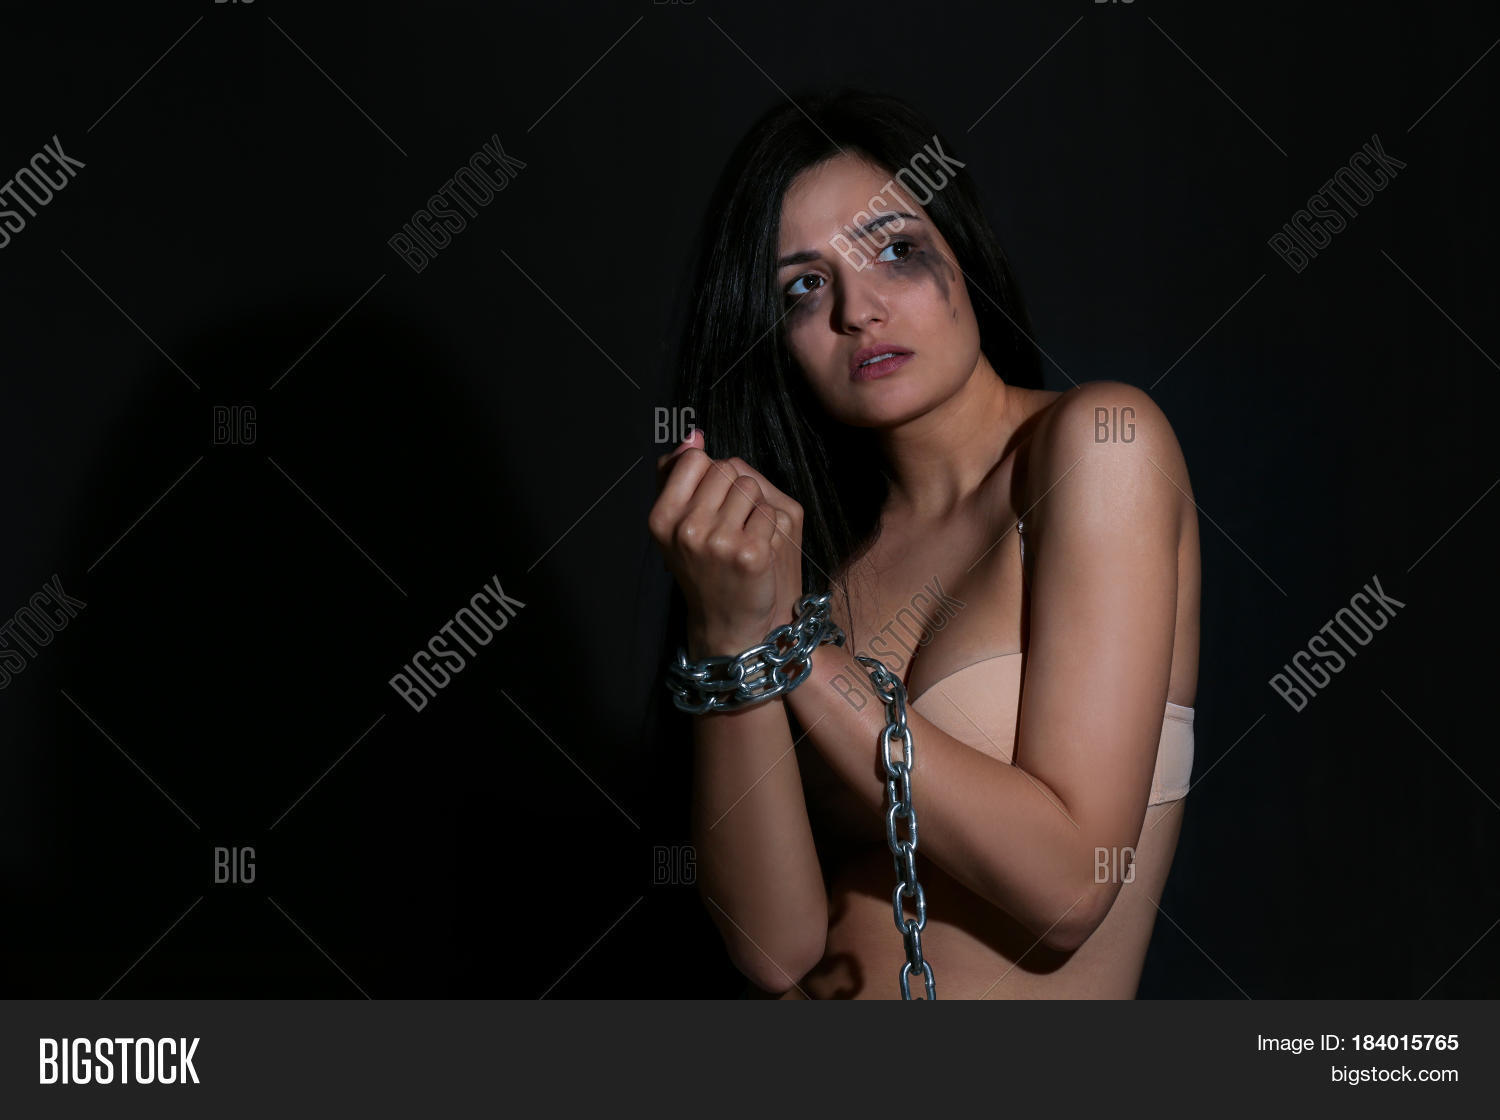 How to play with yourself sexually Nude Photos 59